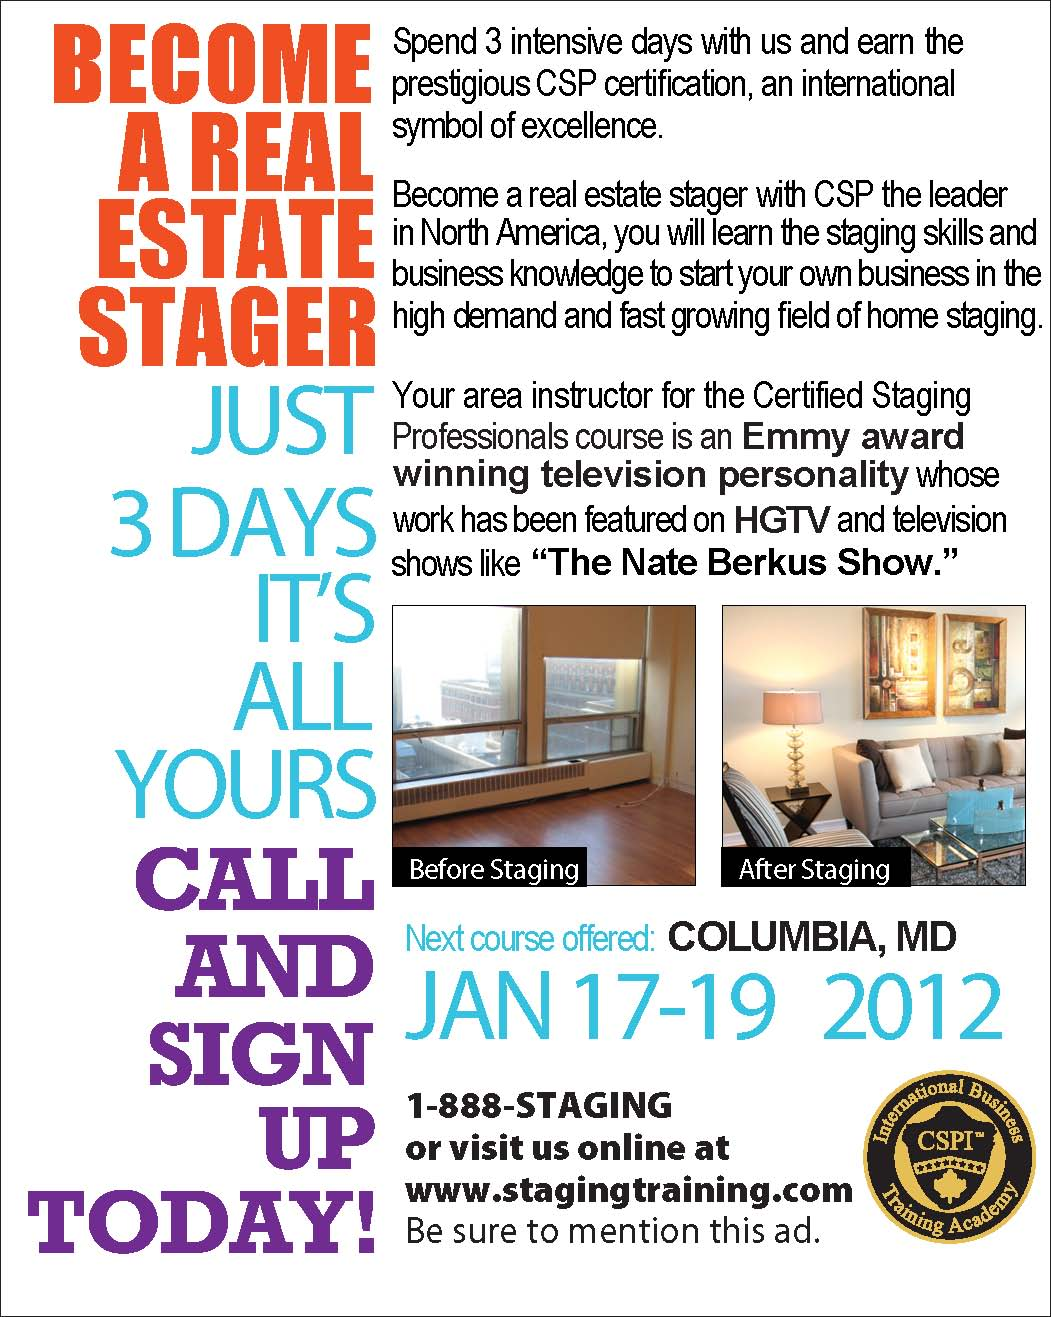 LAS VEGAS HOME STAGING COURSE BECOME A REAL ESTATE STAGER CERTIFIED PROFESSIONALS CLASS FEBRUARY 4 6 2012 IN VEGASNV